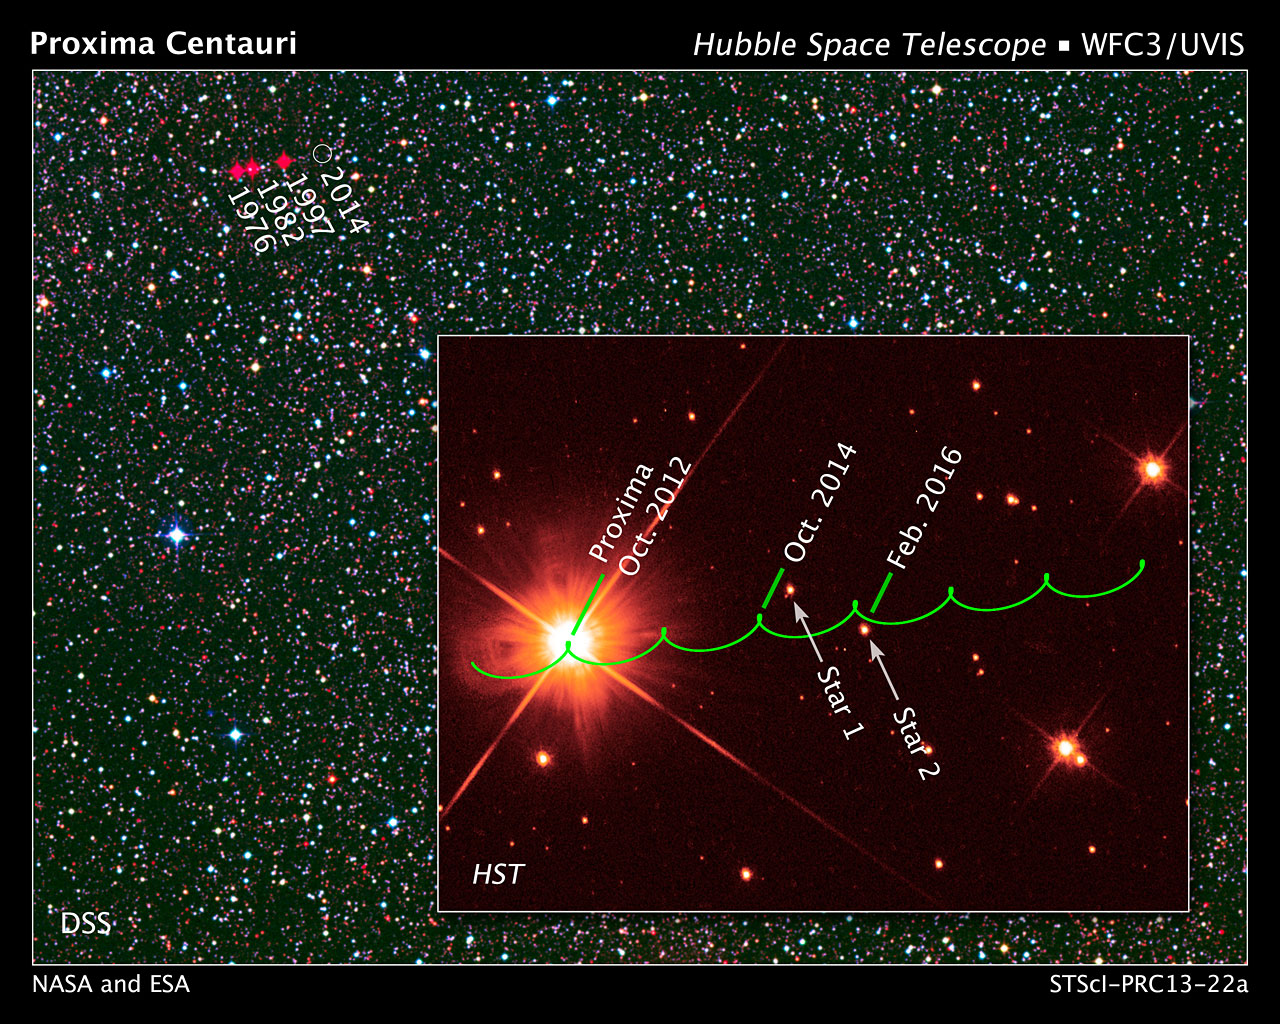 The proper motion path of Proxima Centauri